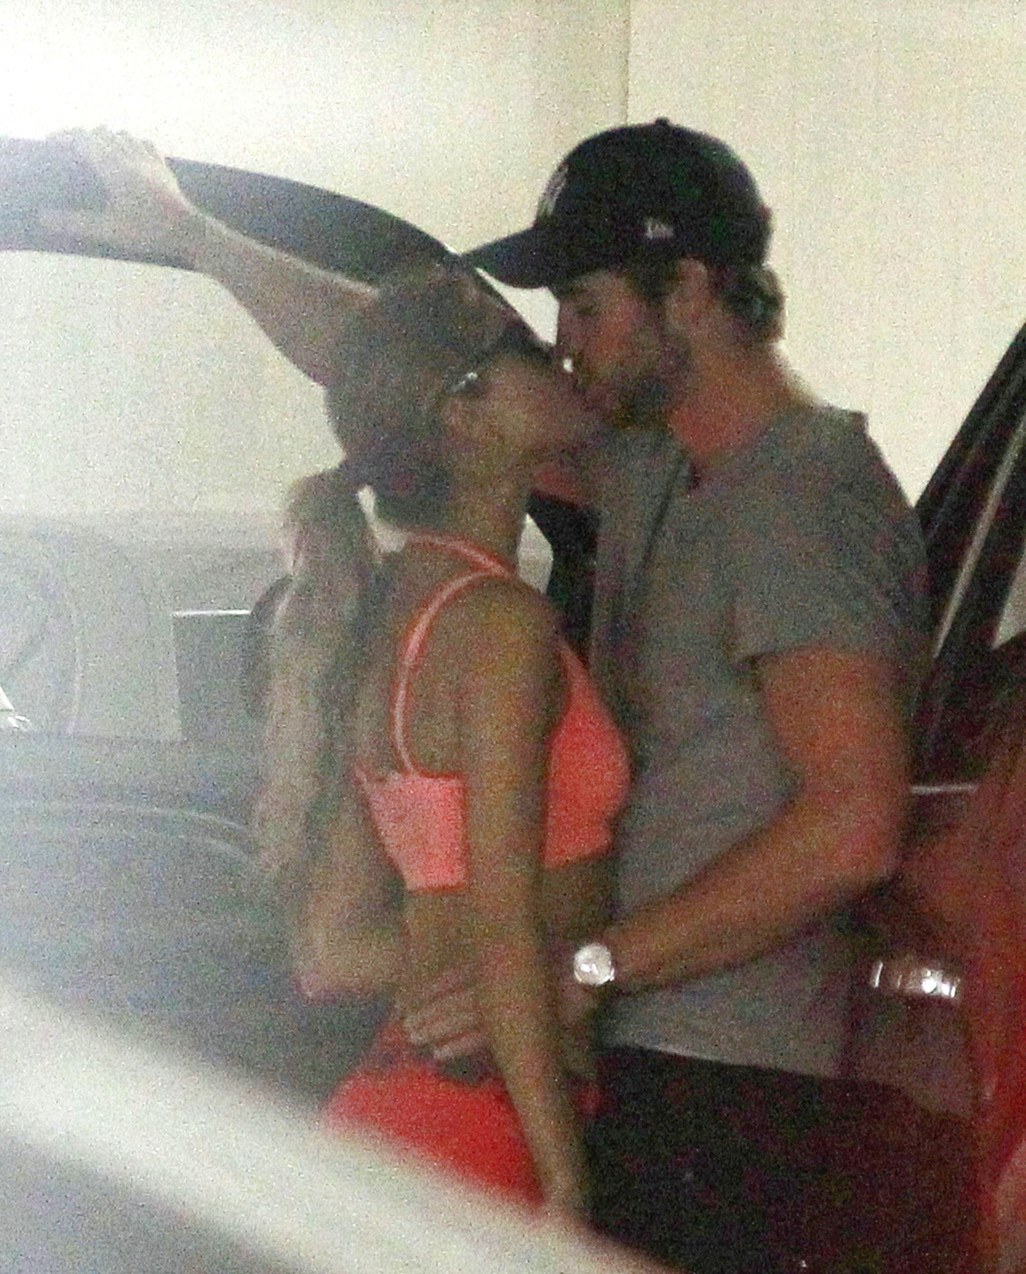 Liam Hemsworth with Eiza González in Beverly Hills on Tuesday. (Pacific Coast News)